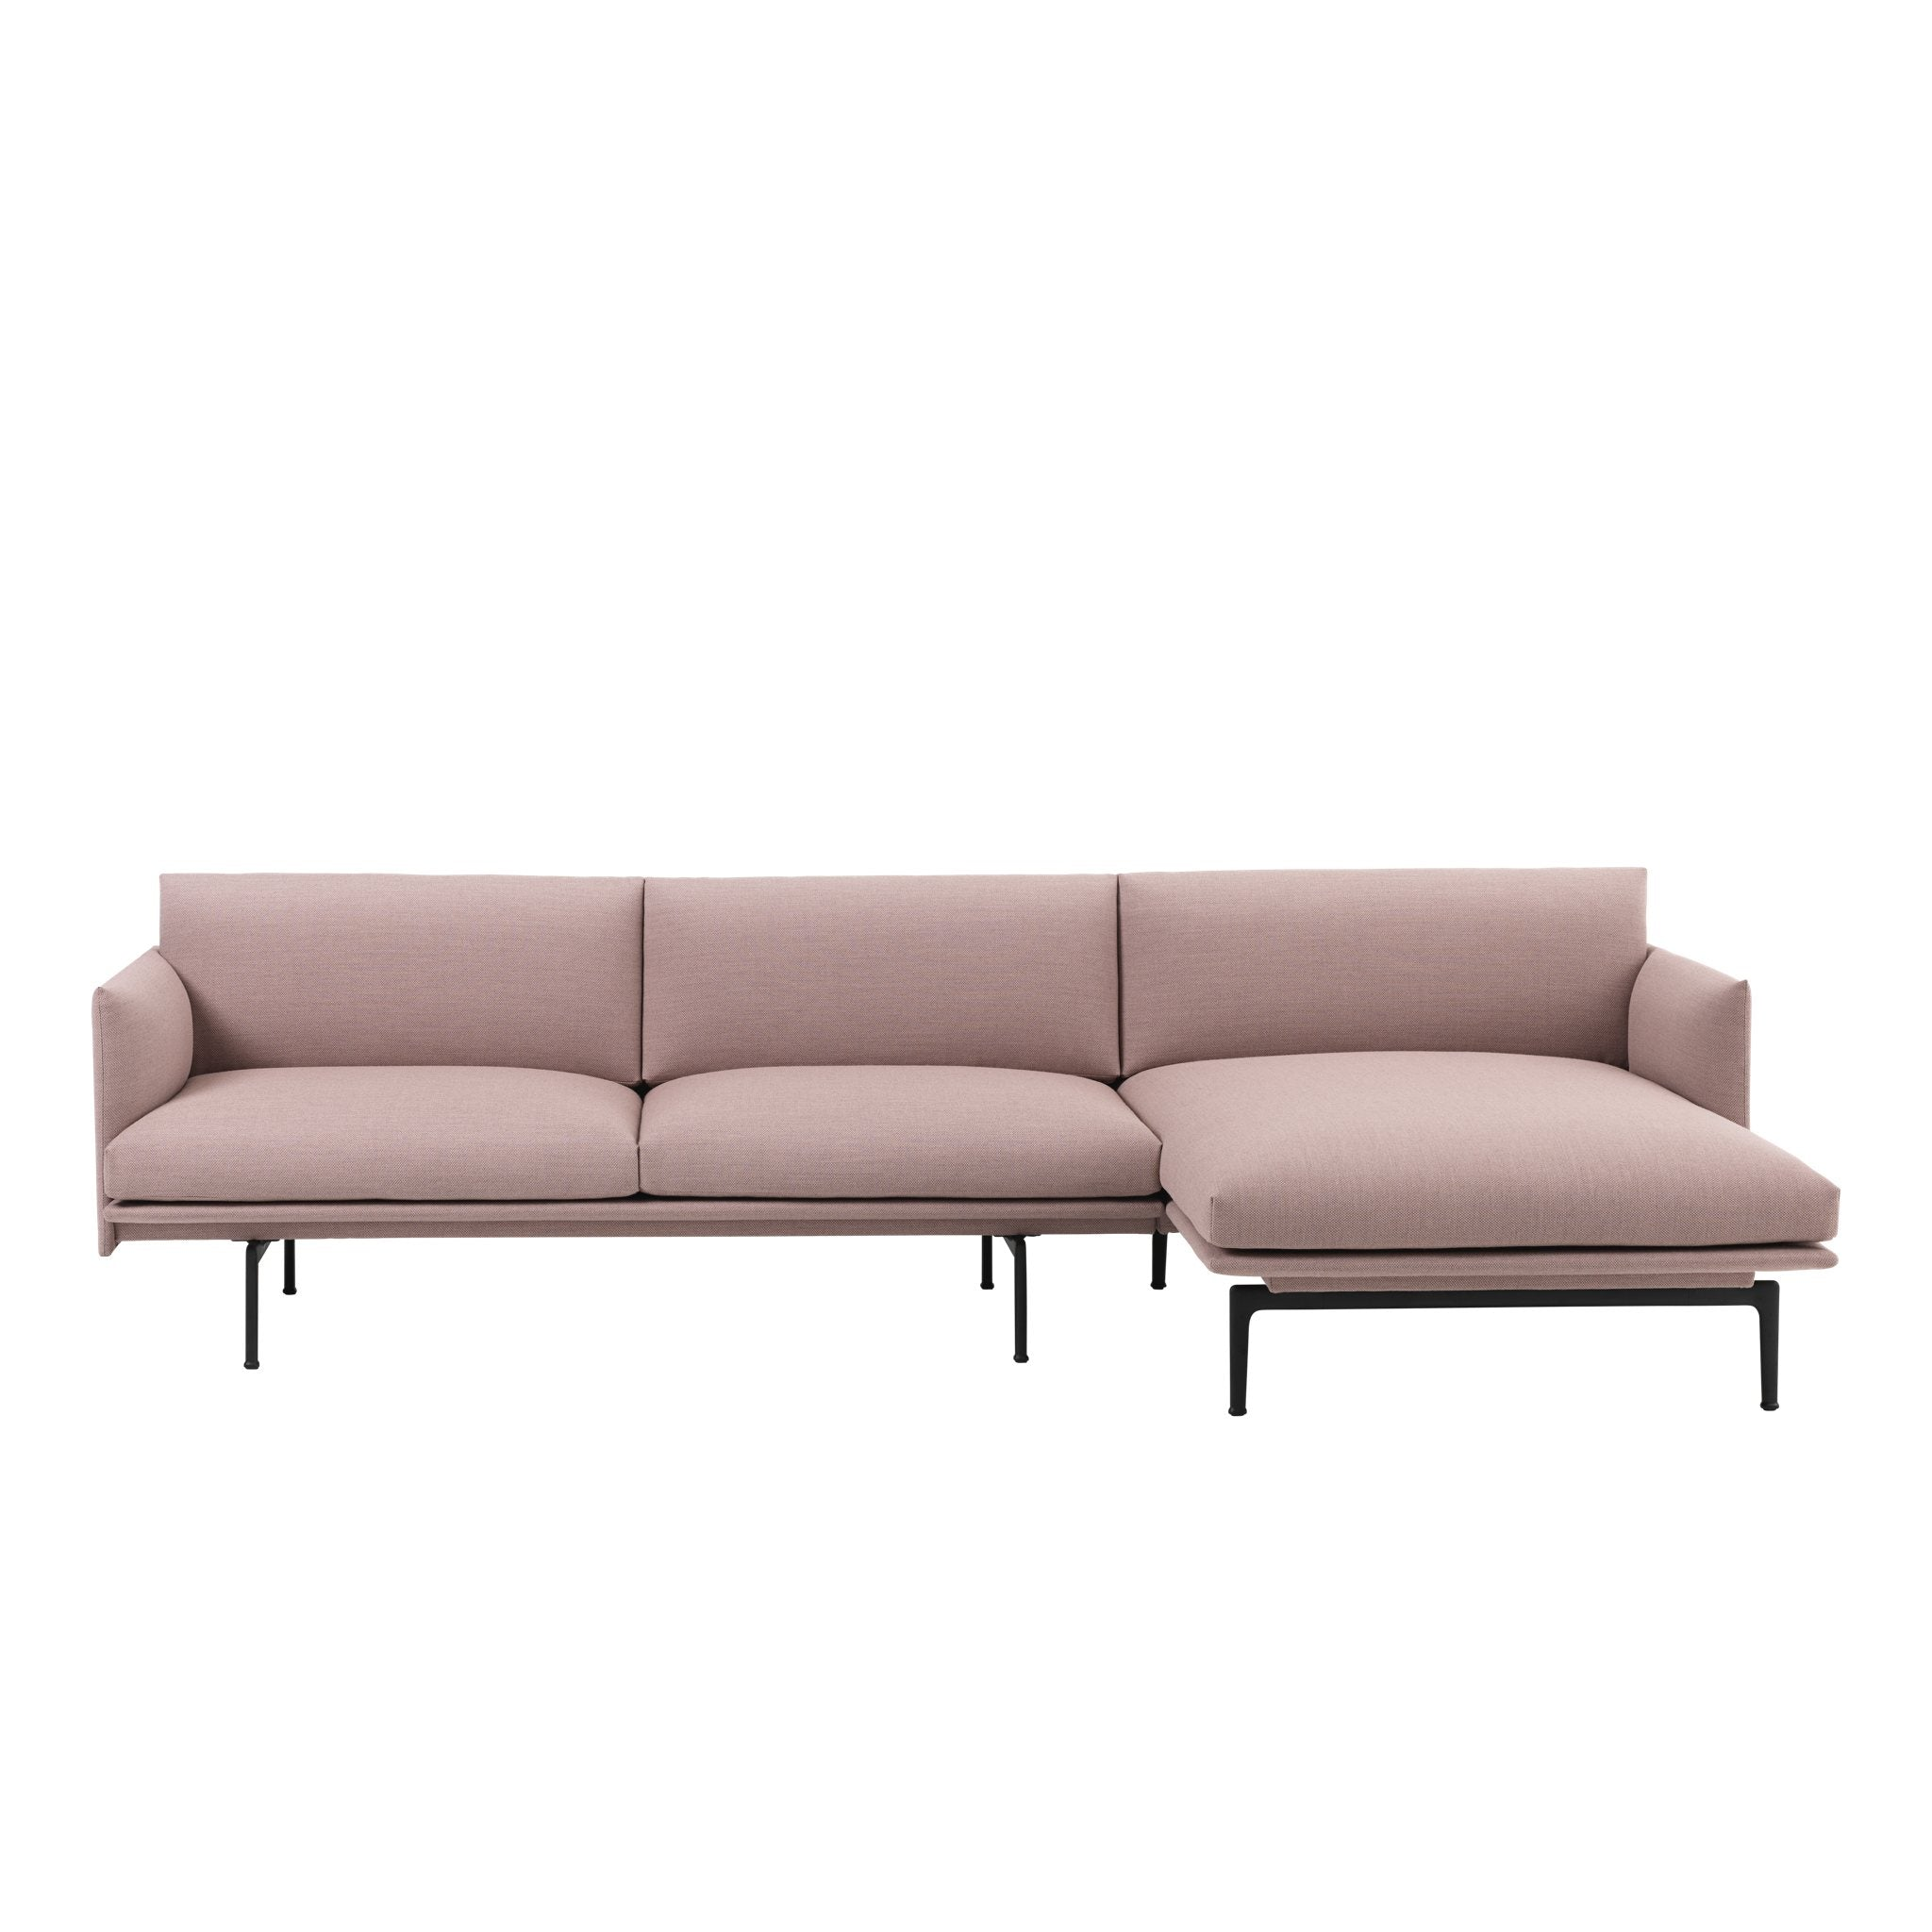 modern modular of hylte mattress single couch cream sleeper luxury sectional size chaise seater with faux beige sofa backabro orange bed day lounge london longue beds offers ikea sofas leather fabric chez storage full chesterfield spr l corner shaped